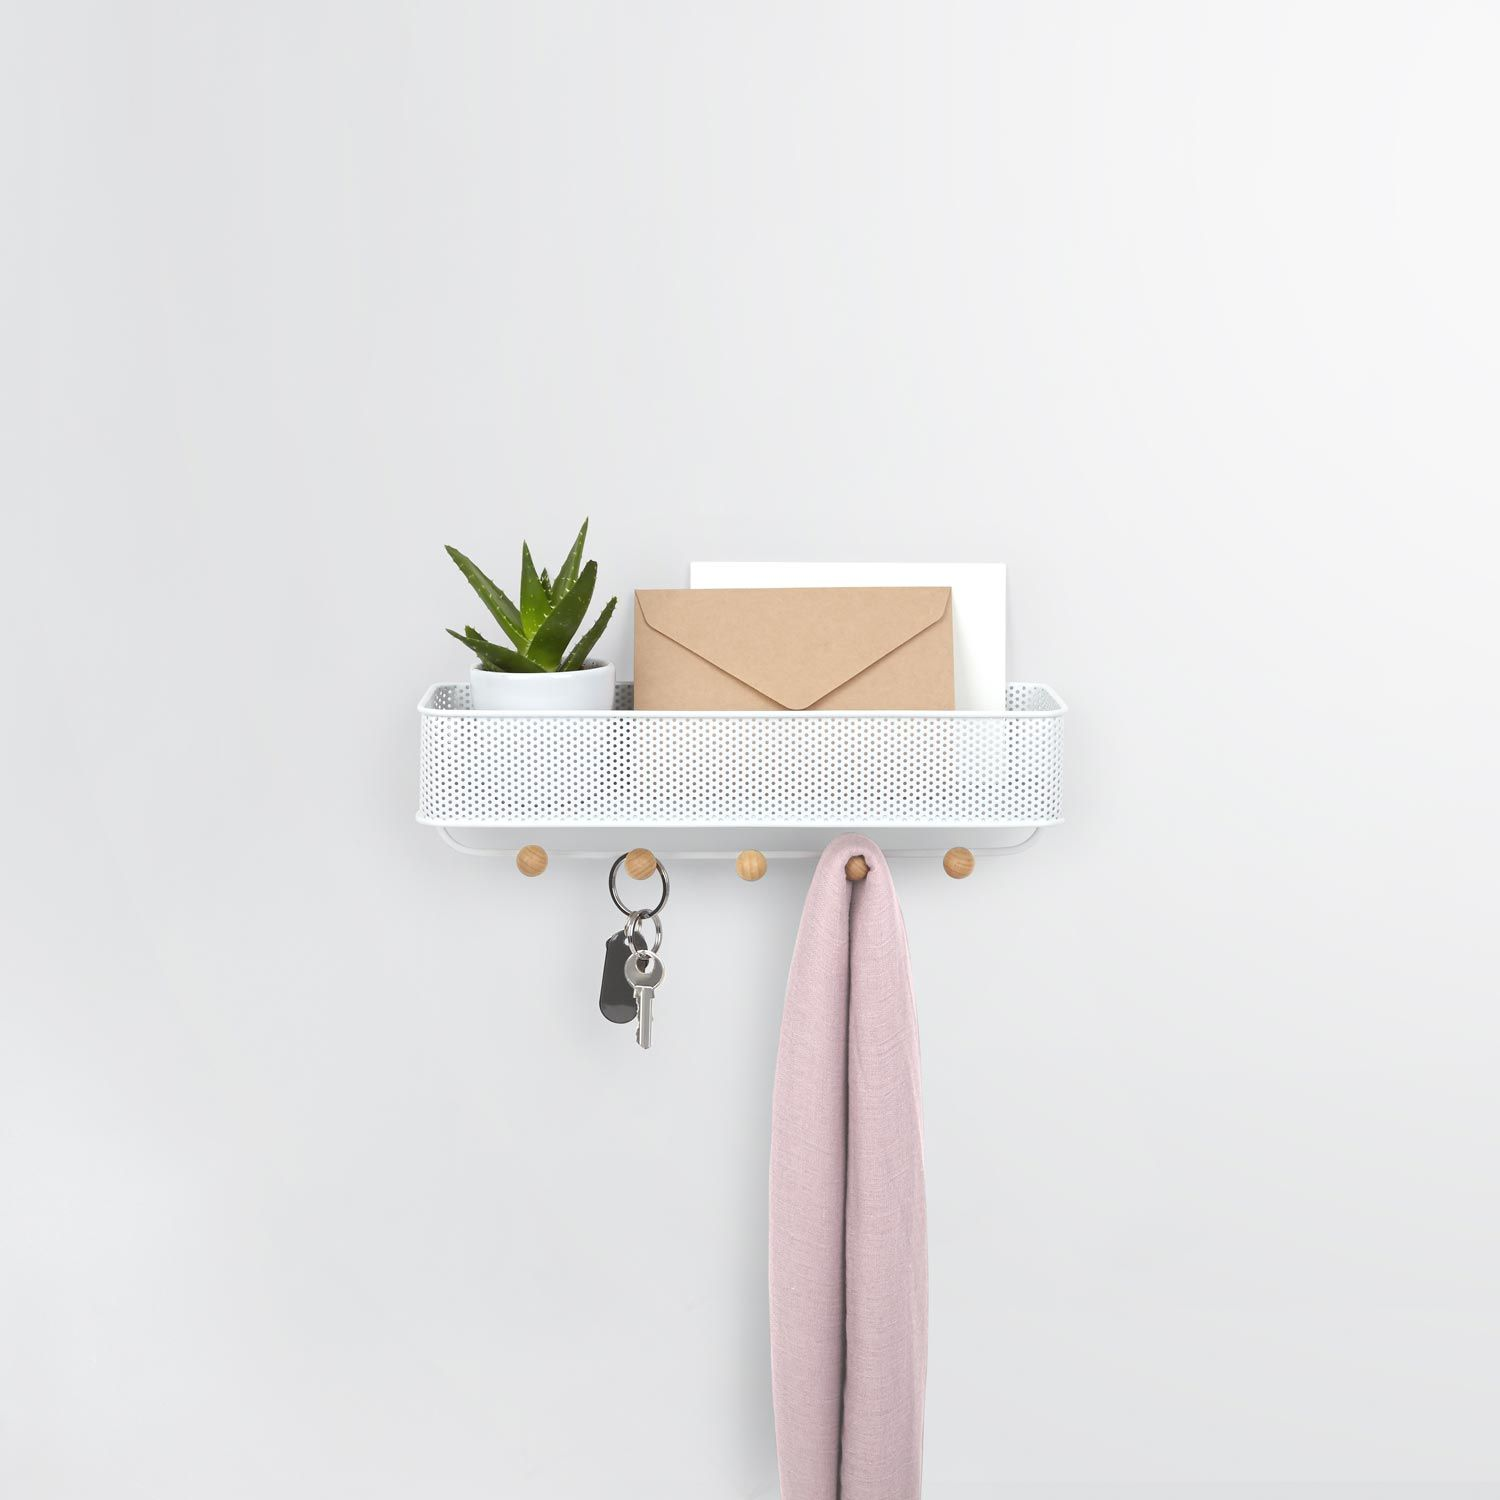 ESTIQUE KEY HOOK & ORGANIZER (WHITE) Designed by Wesley Chau & Edward Lee |